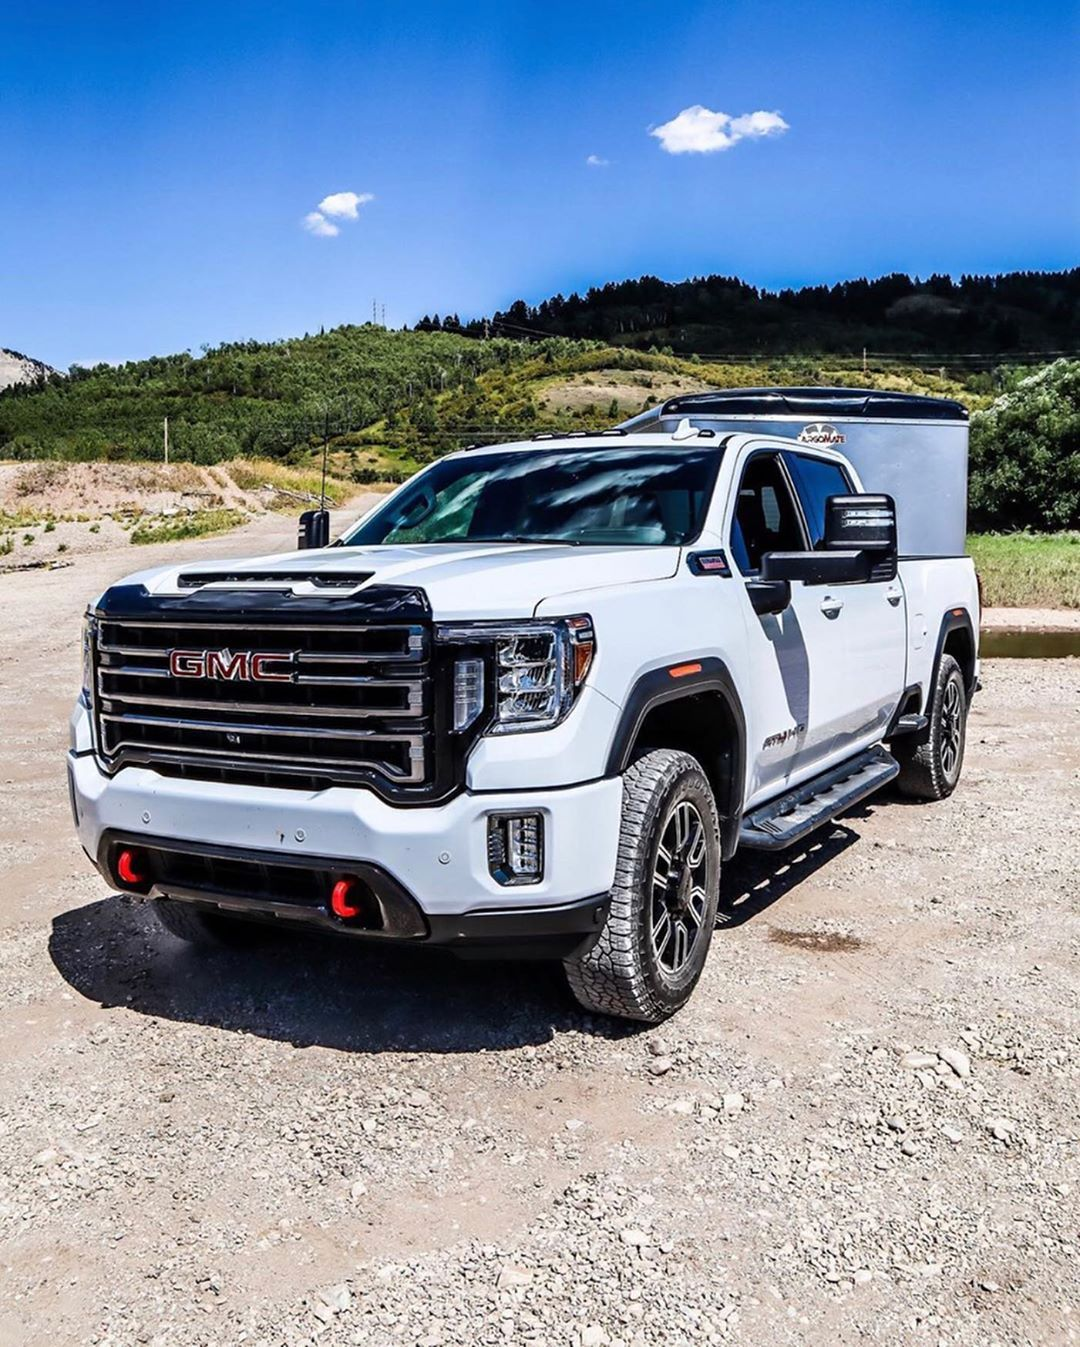 Torq Offroad And Jul Torq Doing Some Testing On The New Gmc Sierra Hd At4 Duramax Diesel Putting That 10 Speed To The Test In Wyoming Gmc Gmc Sierra Duramax